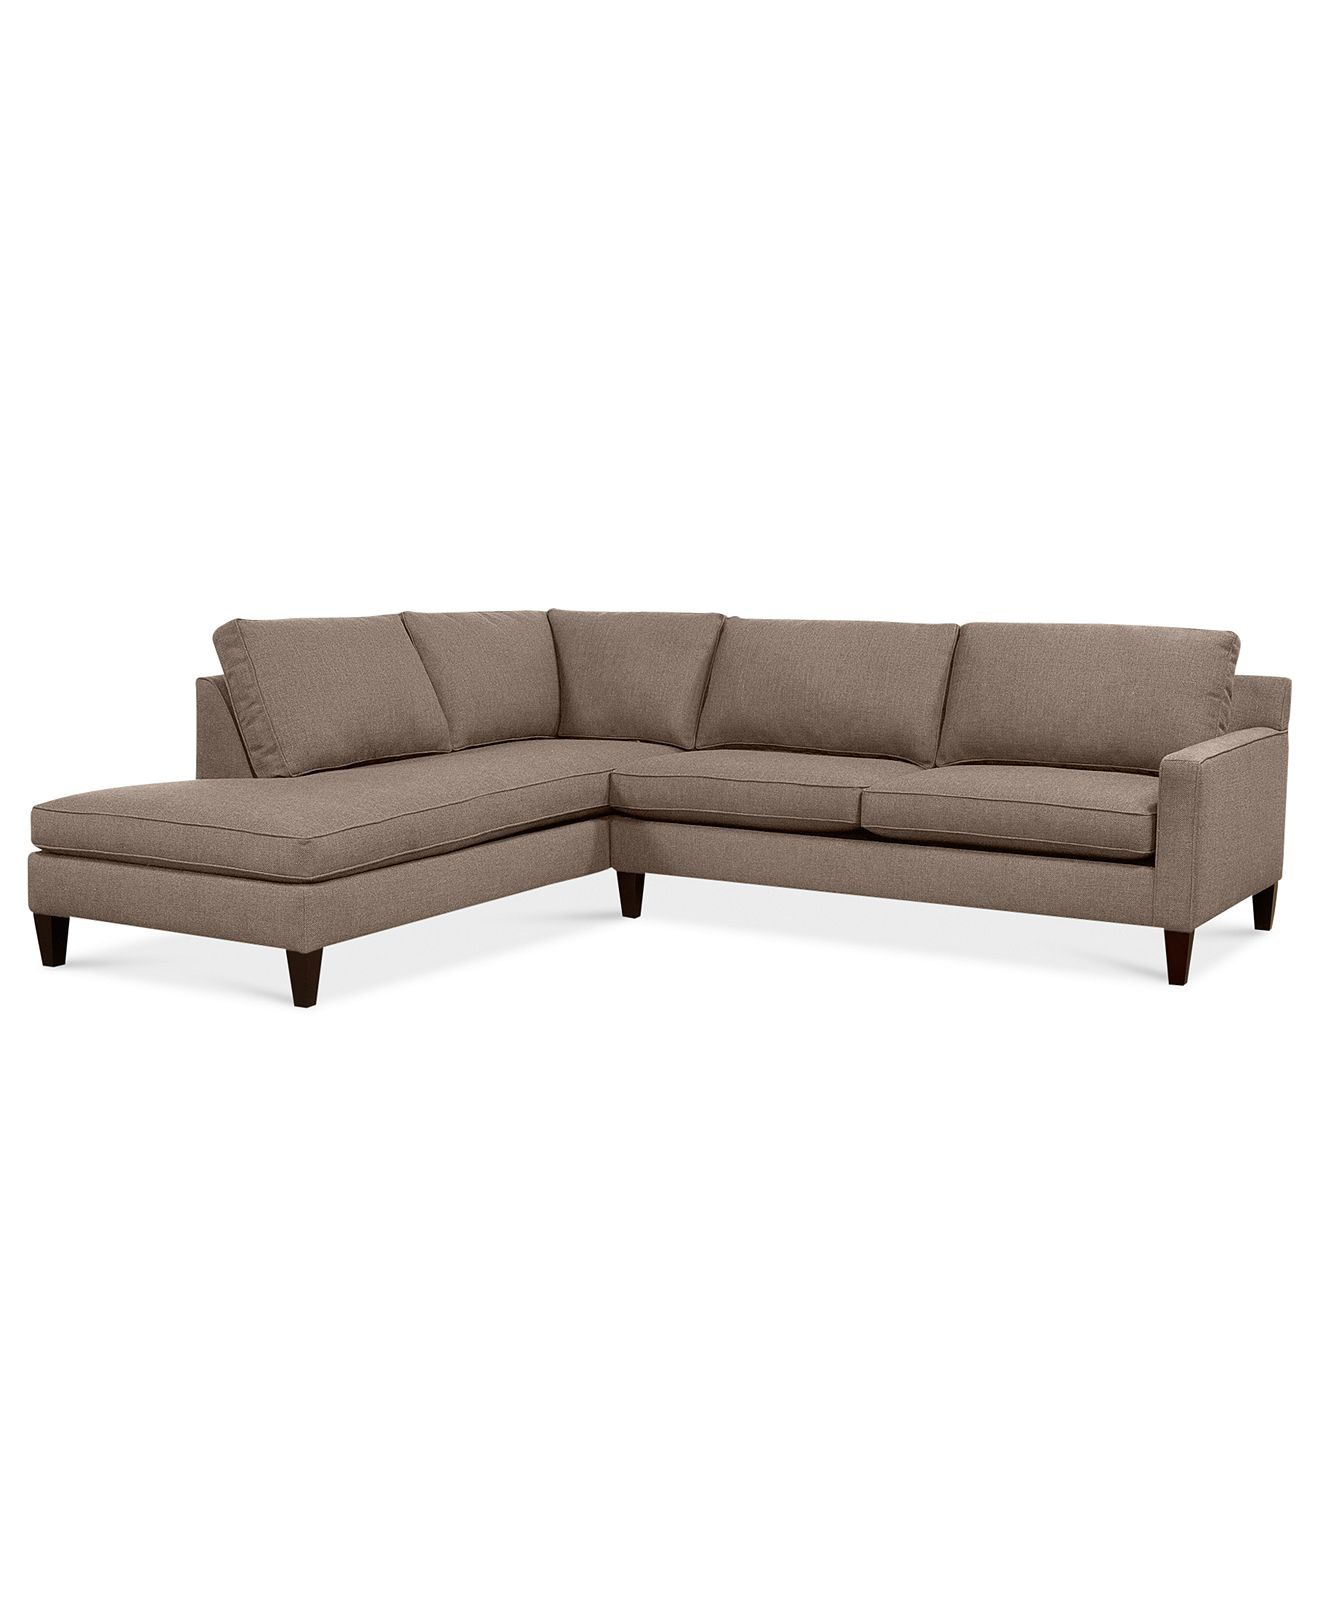 alanis fabric sectional sofa 2 piece 105quotw x 90quotd x 34quoth With sectional sofa 105